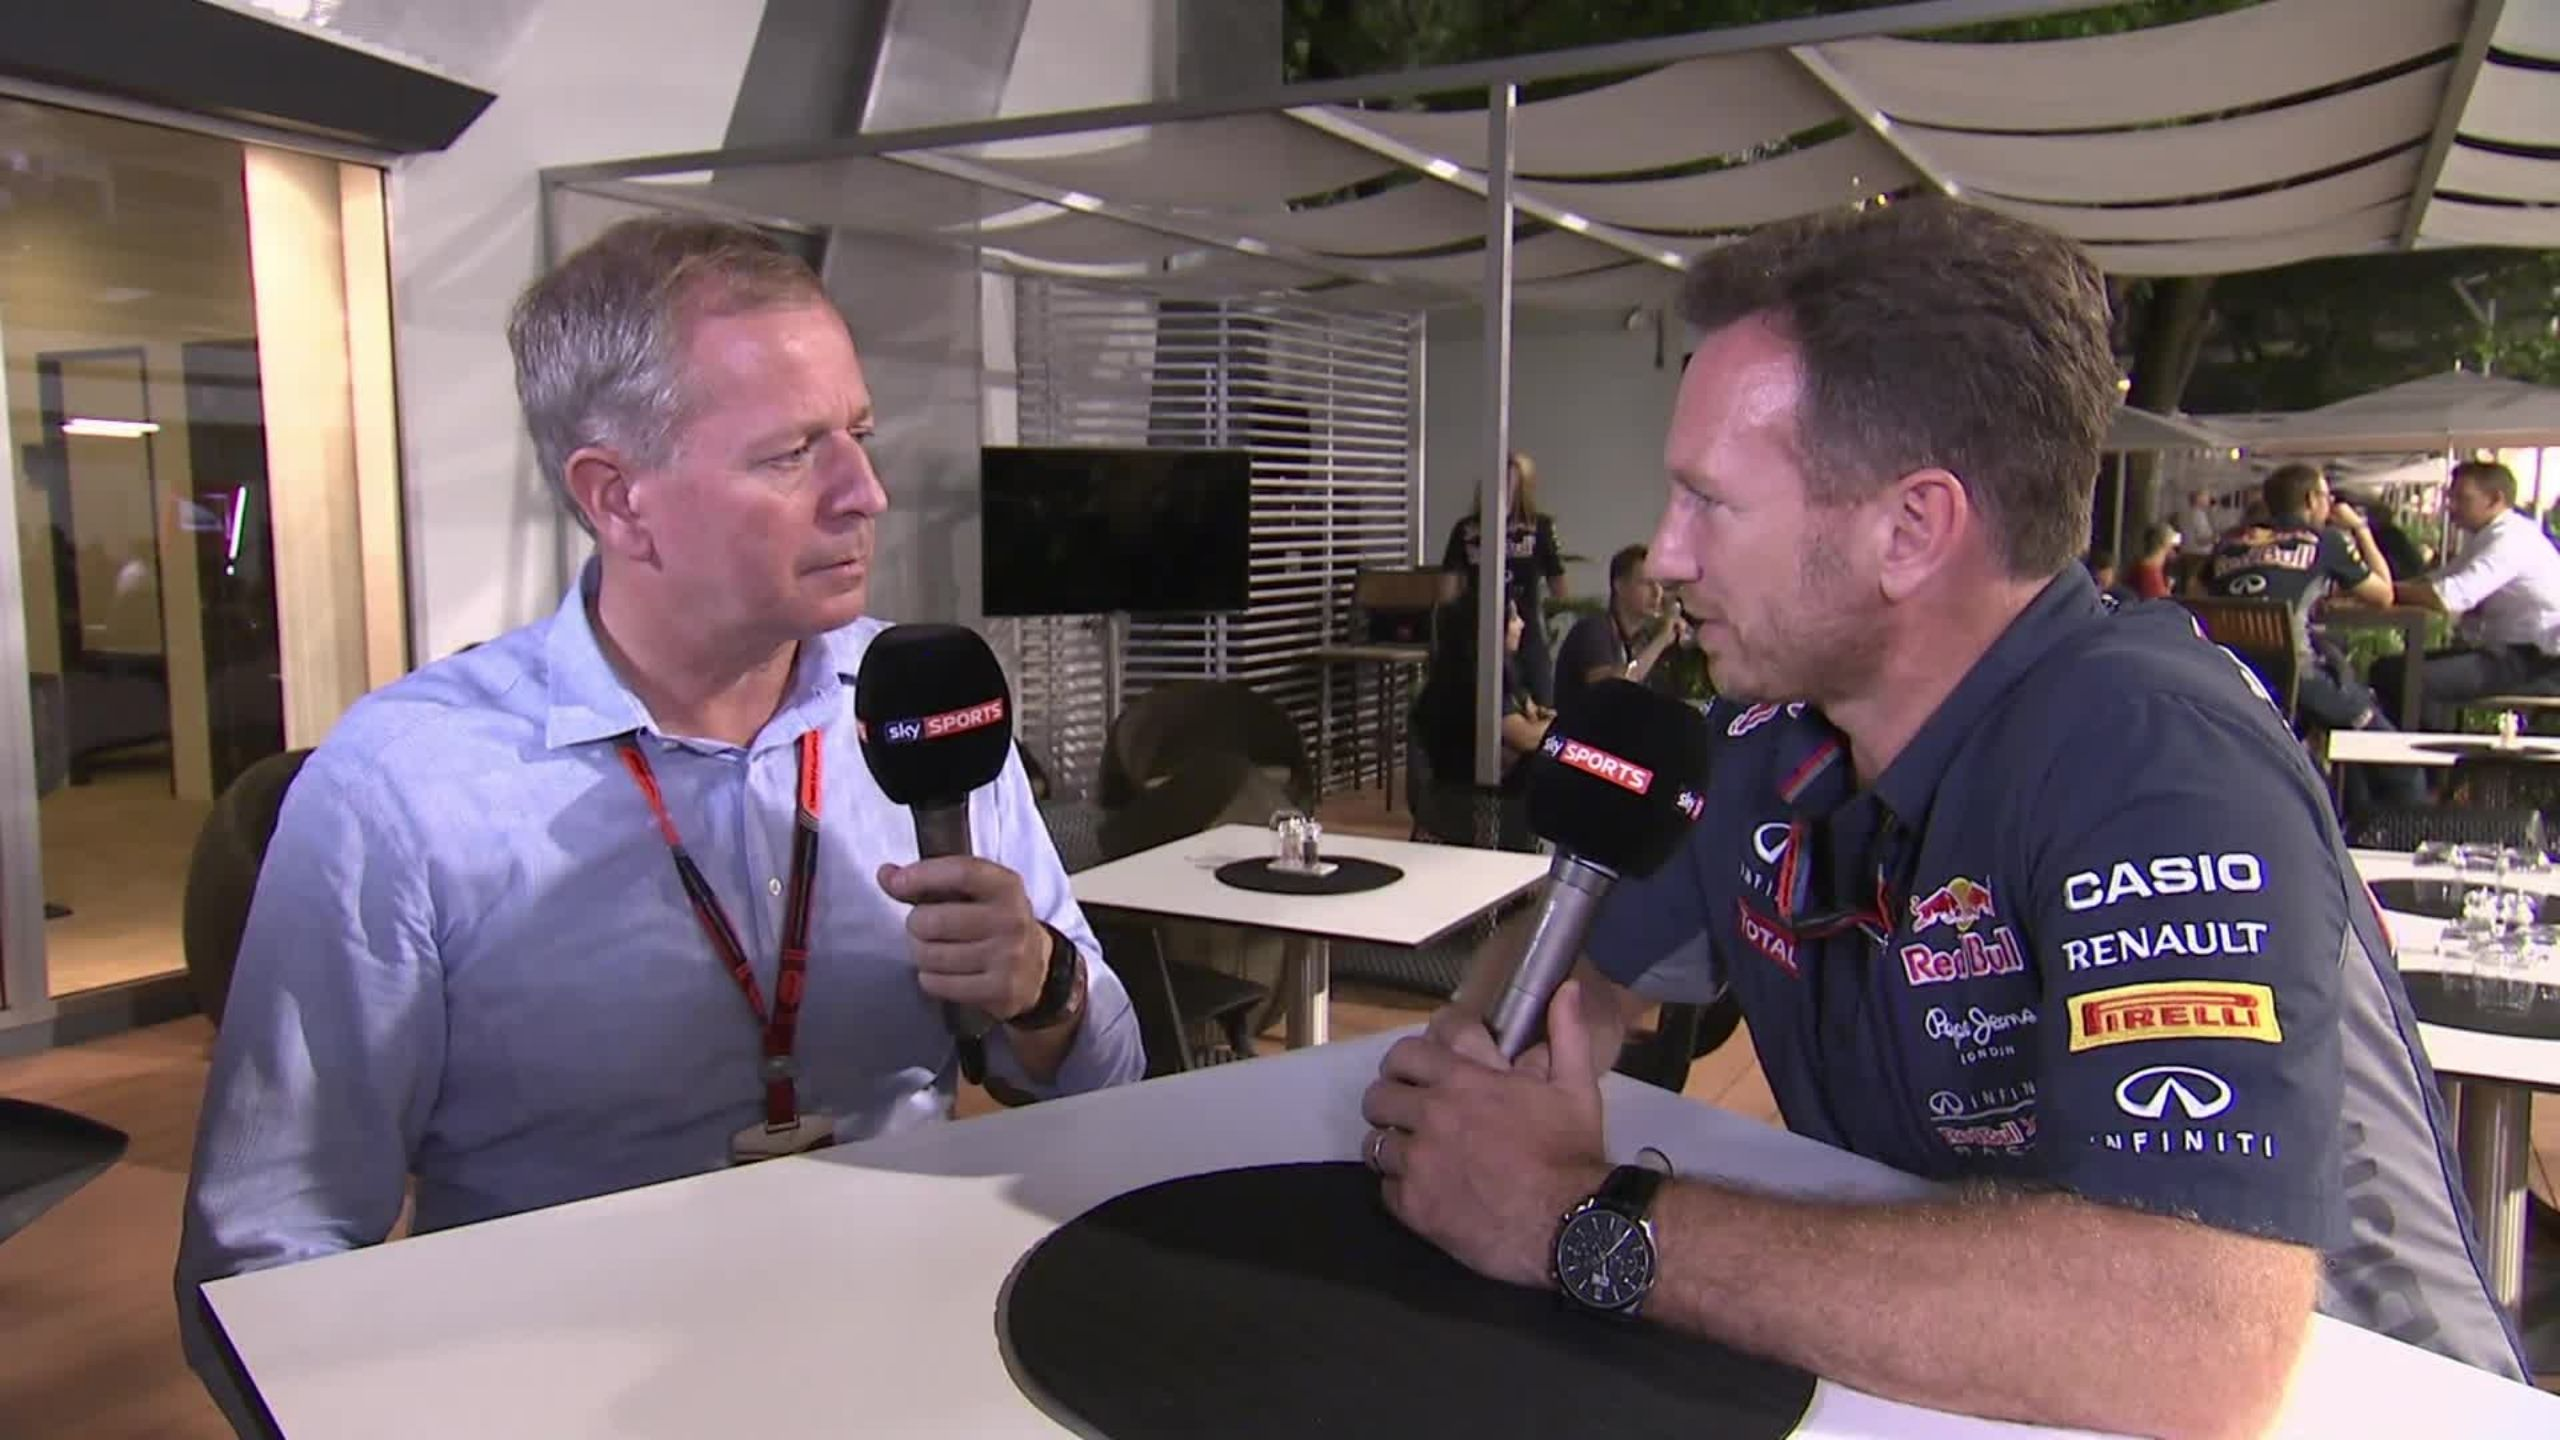 Christian Horner shares hilarious anecdote of a bet with Martin Brundle which left him naked on a pool